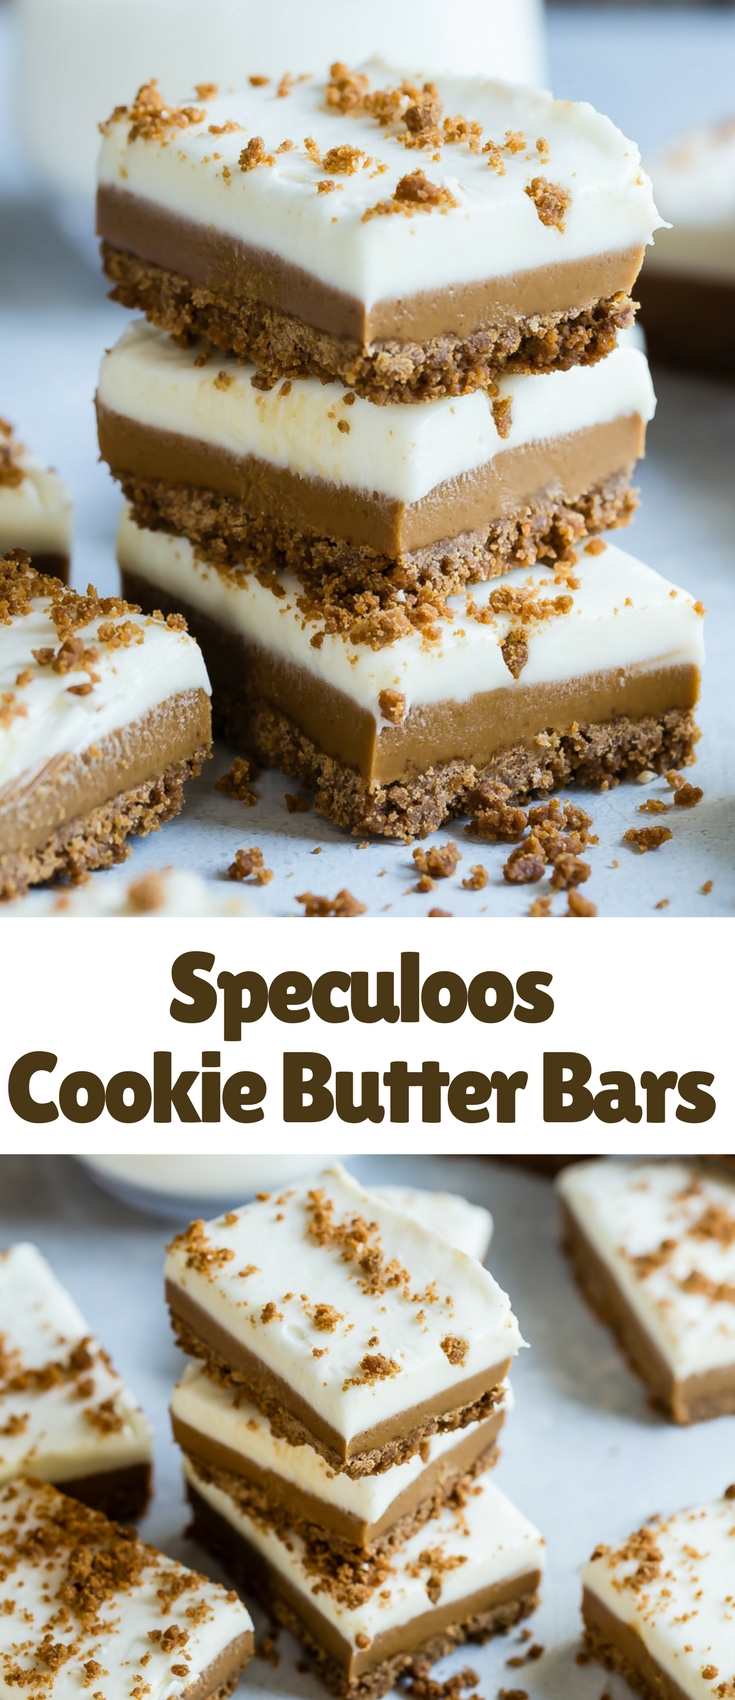 Have you seen the new Cookie Butter Bars in Starbucks? They taste completely ridiculously good and you can make them at home, which also means you can eat way too many!